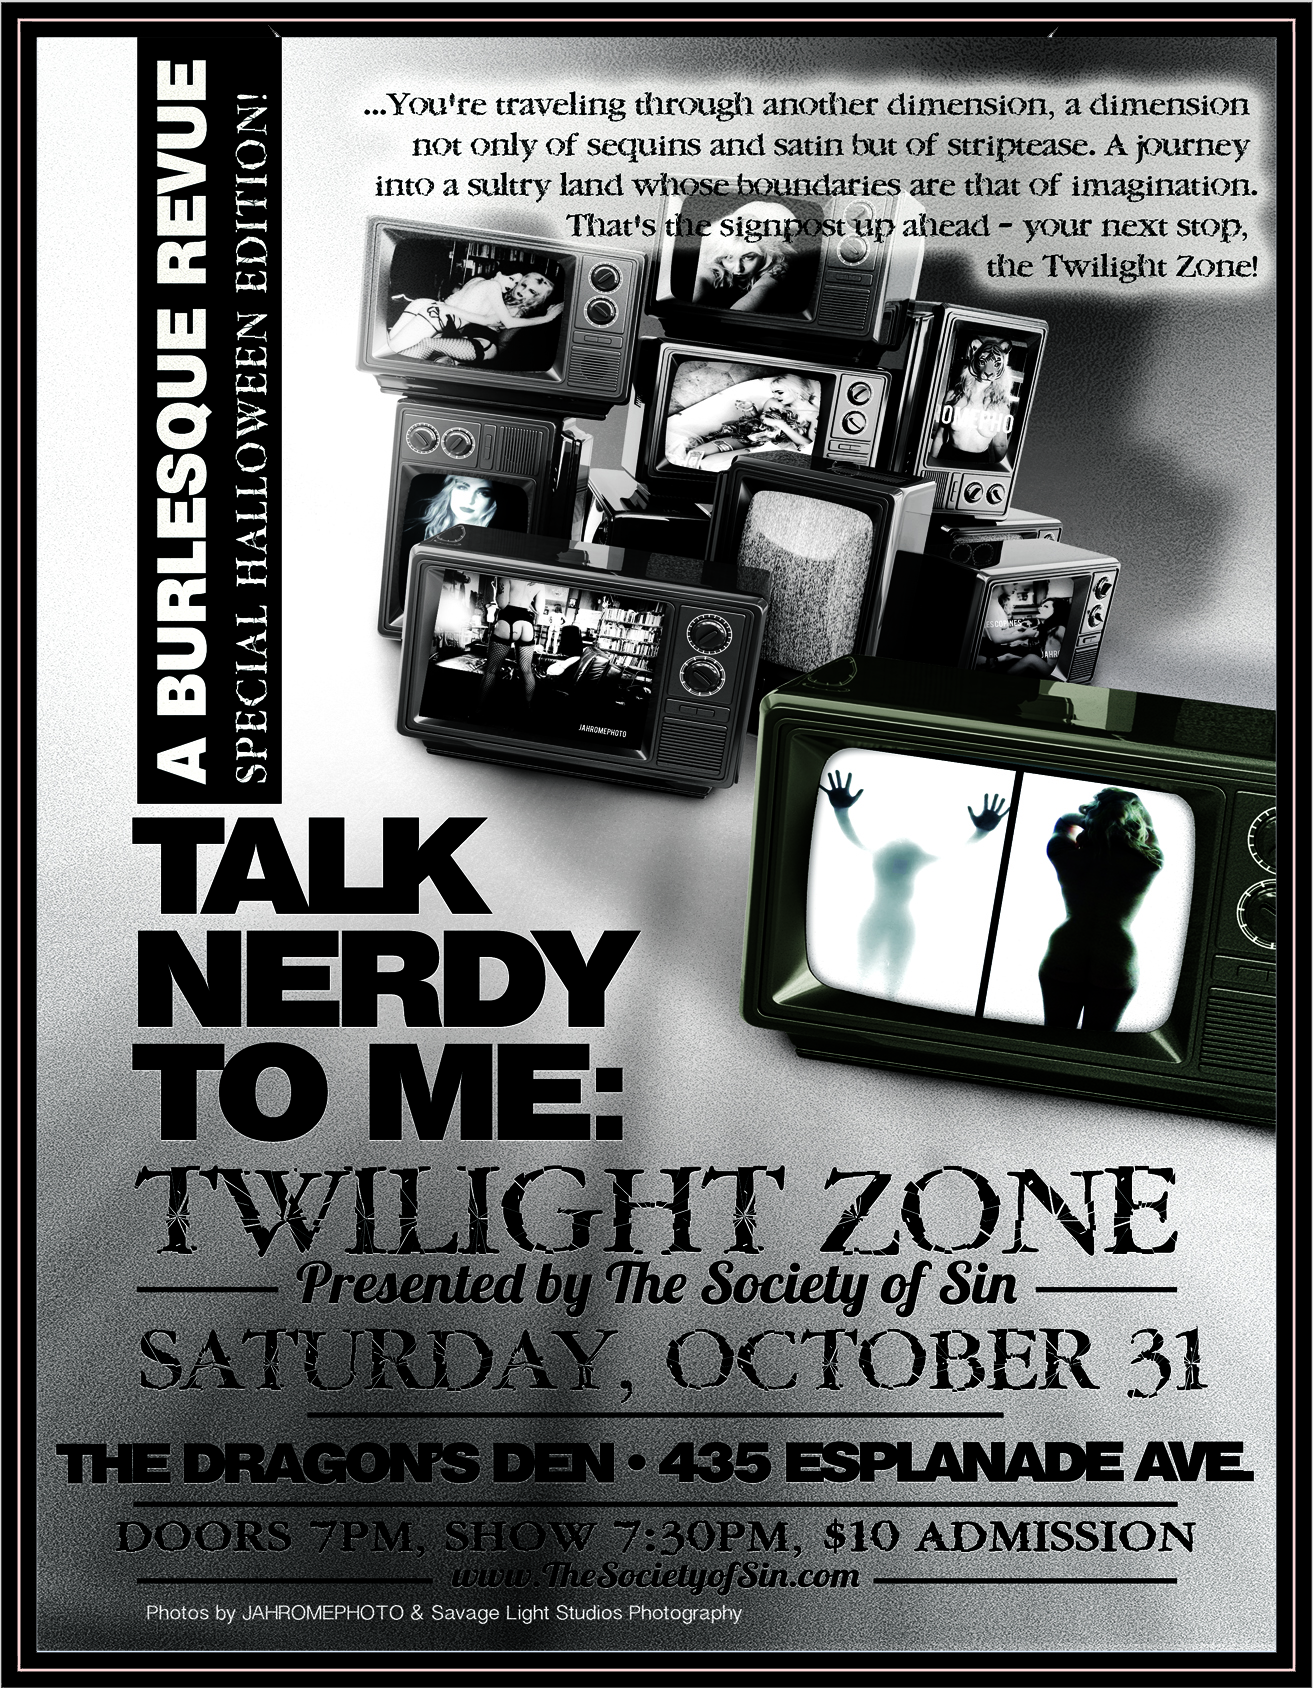 Talk Nerdy To Me: Twilight Zone